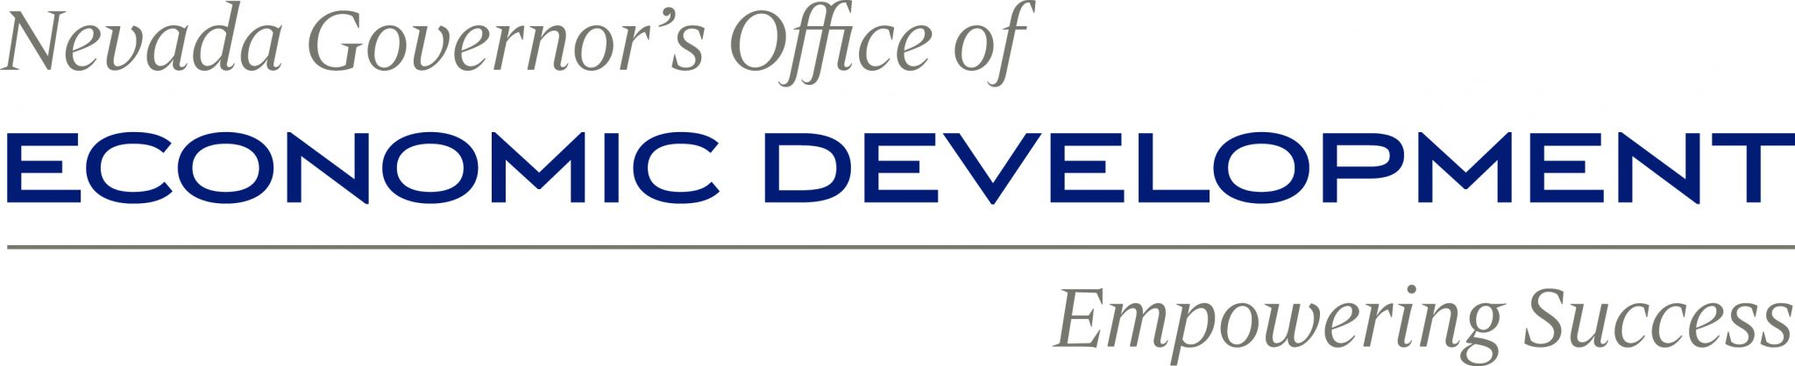 Nevada Governor's Office of Economic Dev